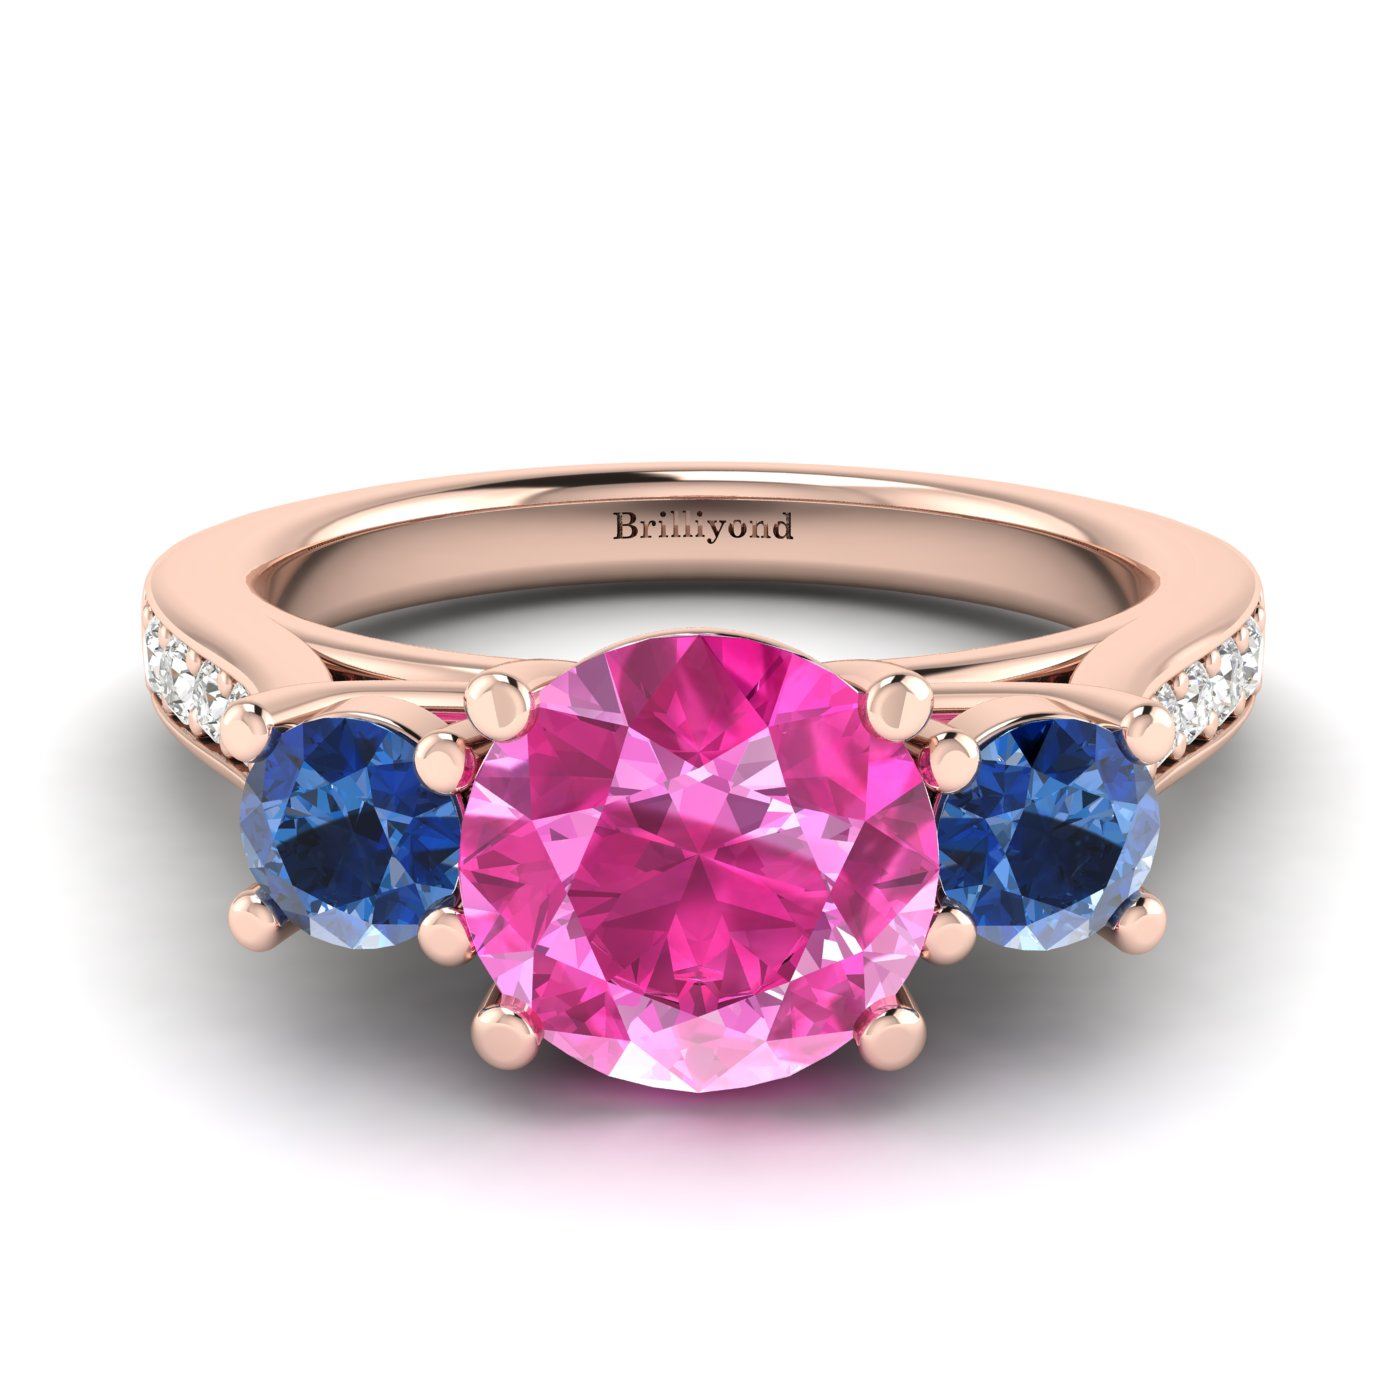 Customisable Engagement Rings | 18k Gold Engagement Rings with ...